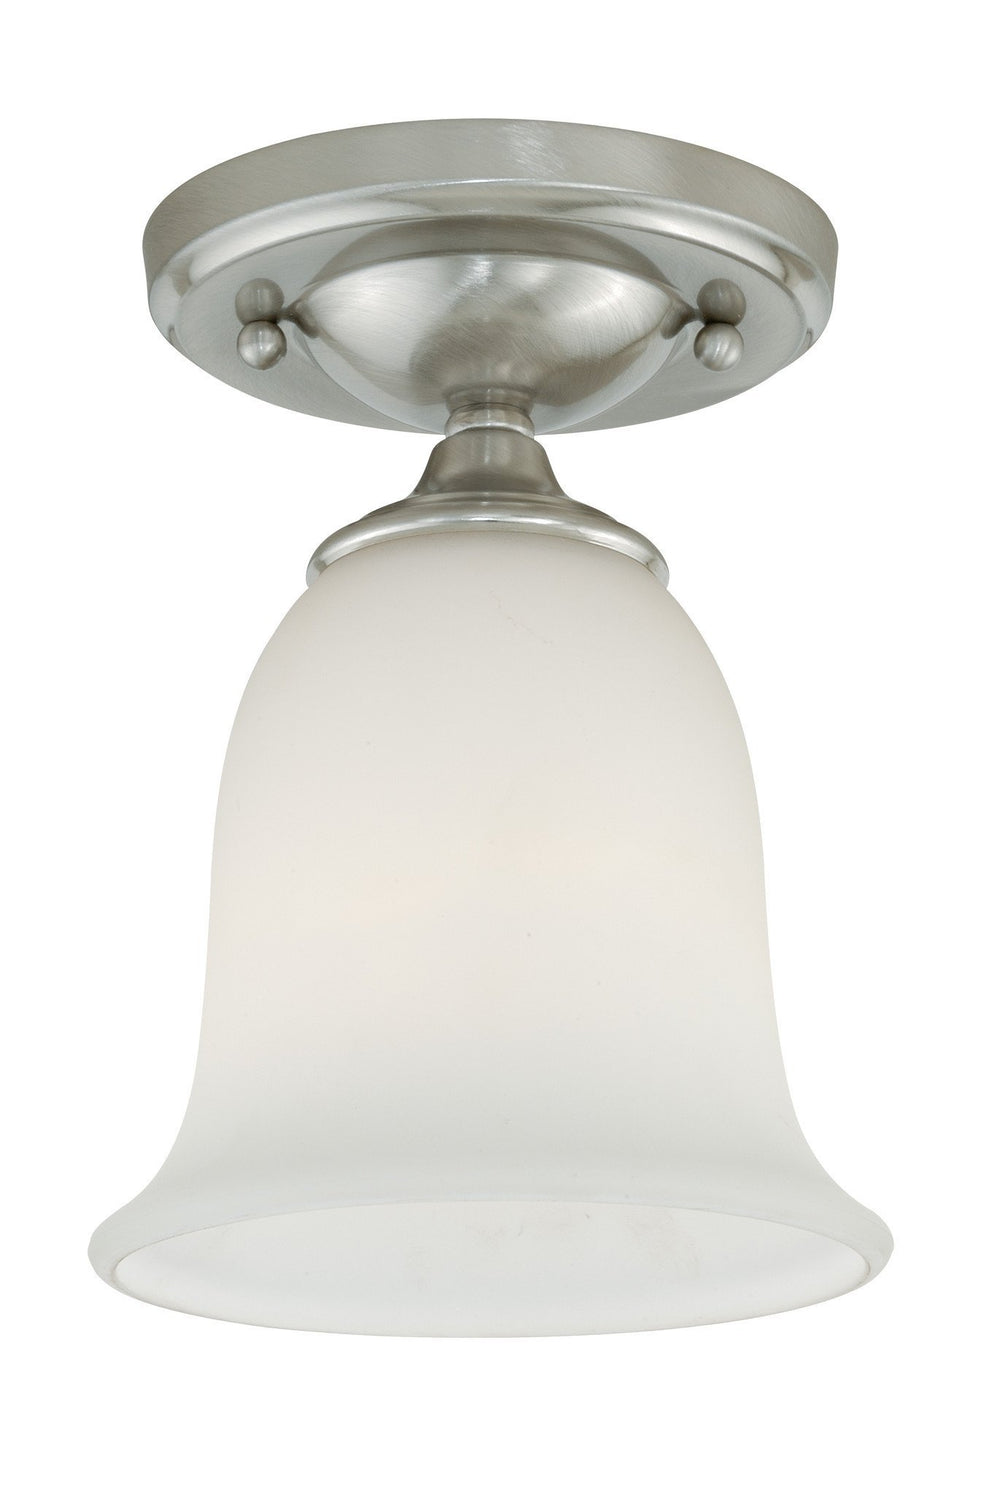 Vaxcel Ceiling Light 6 Inch Model: C0029